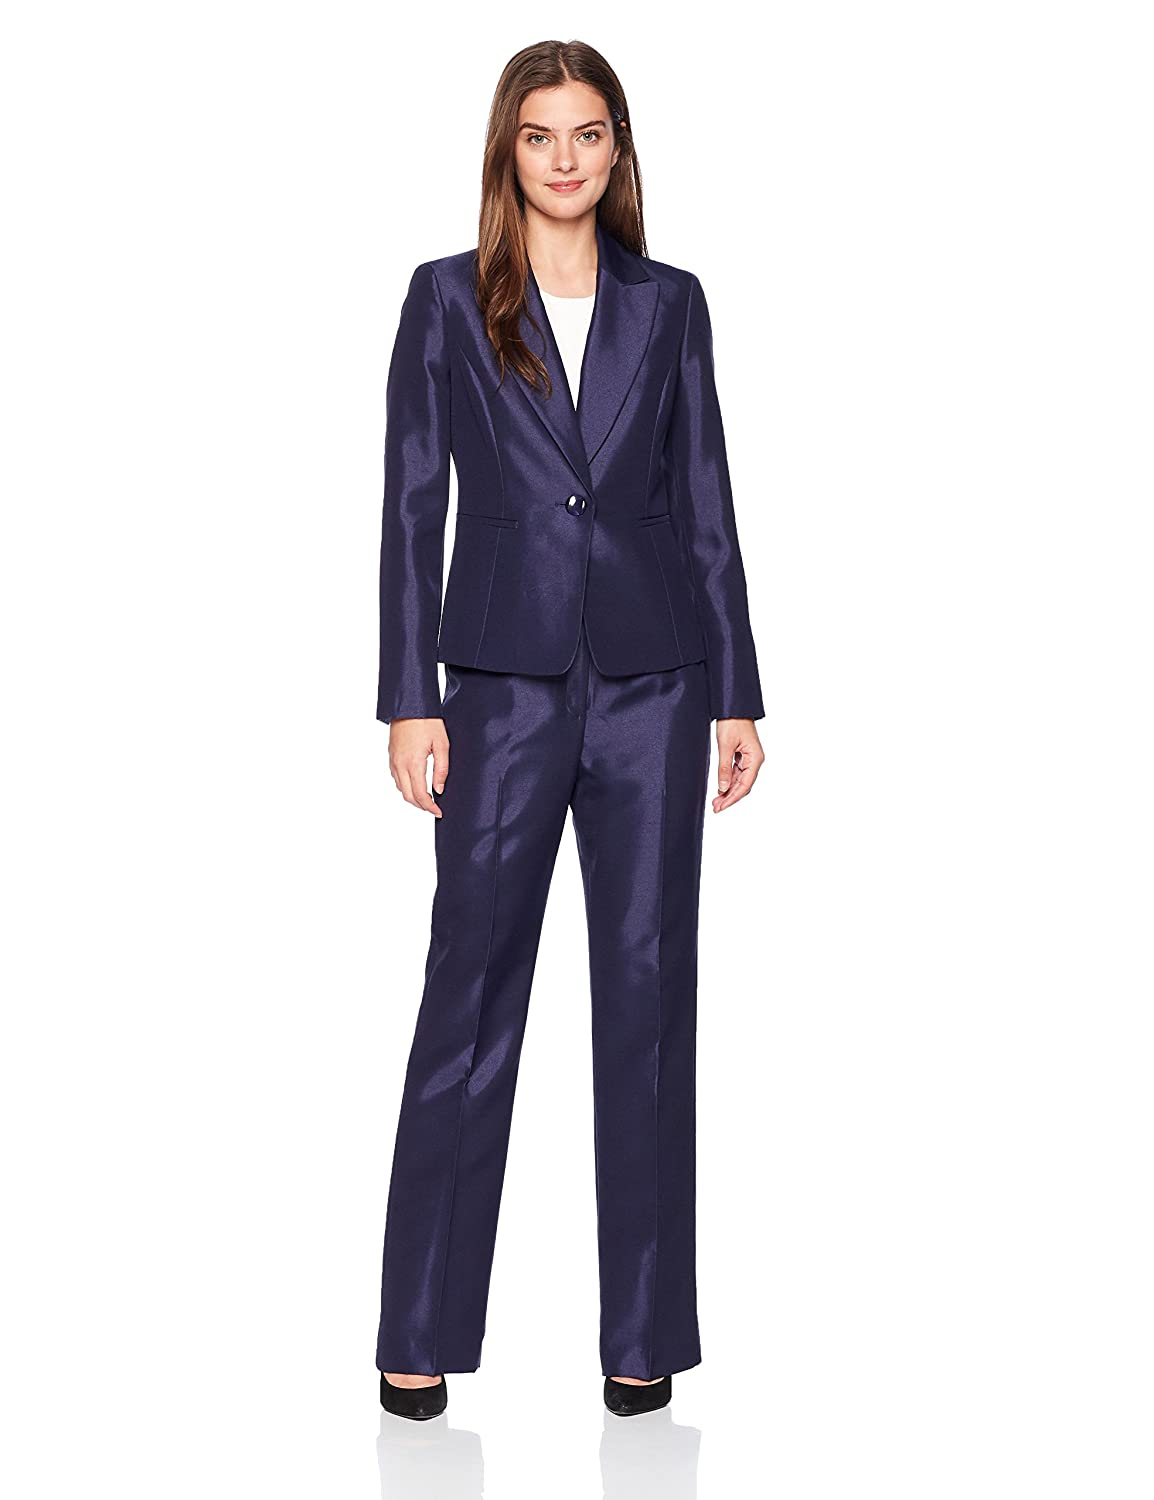 Le Suit Women's Shiny 1 Bttn Peak Lapel Pant 50037003